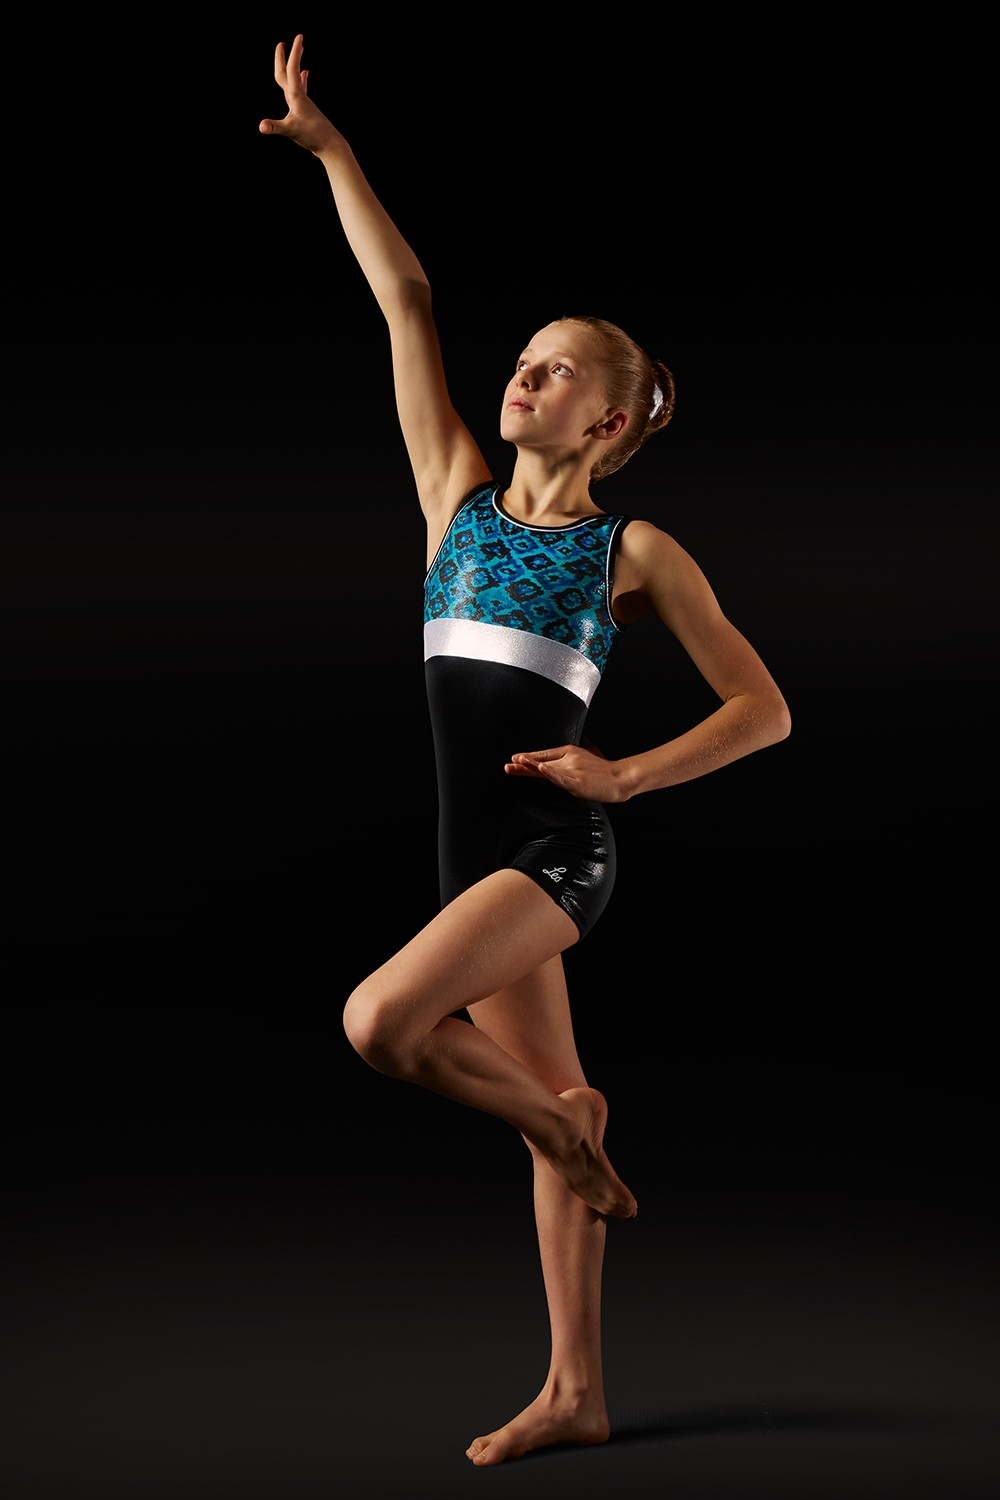 Women's Gymnastics Unitards